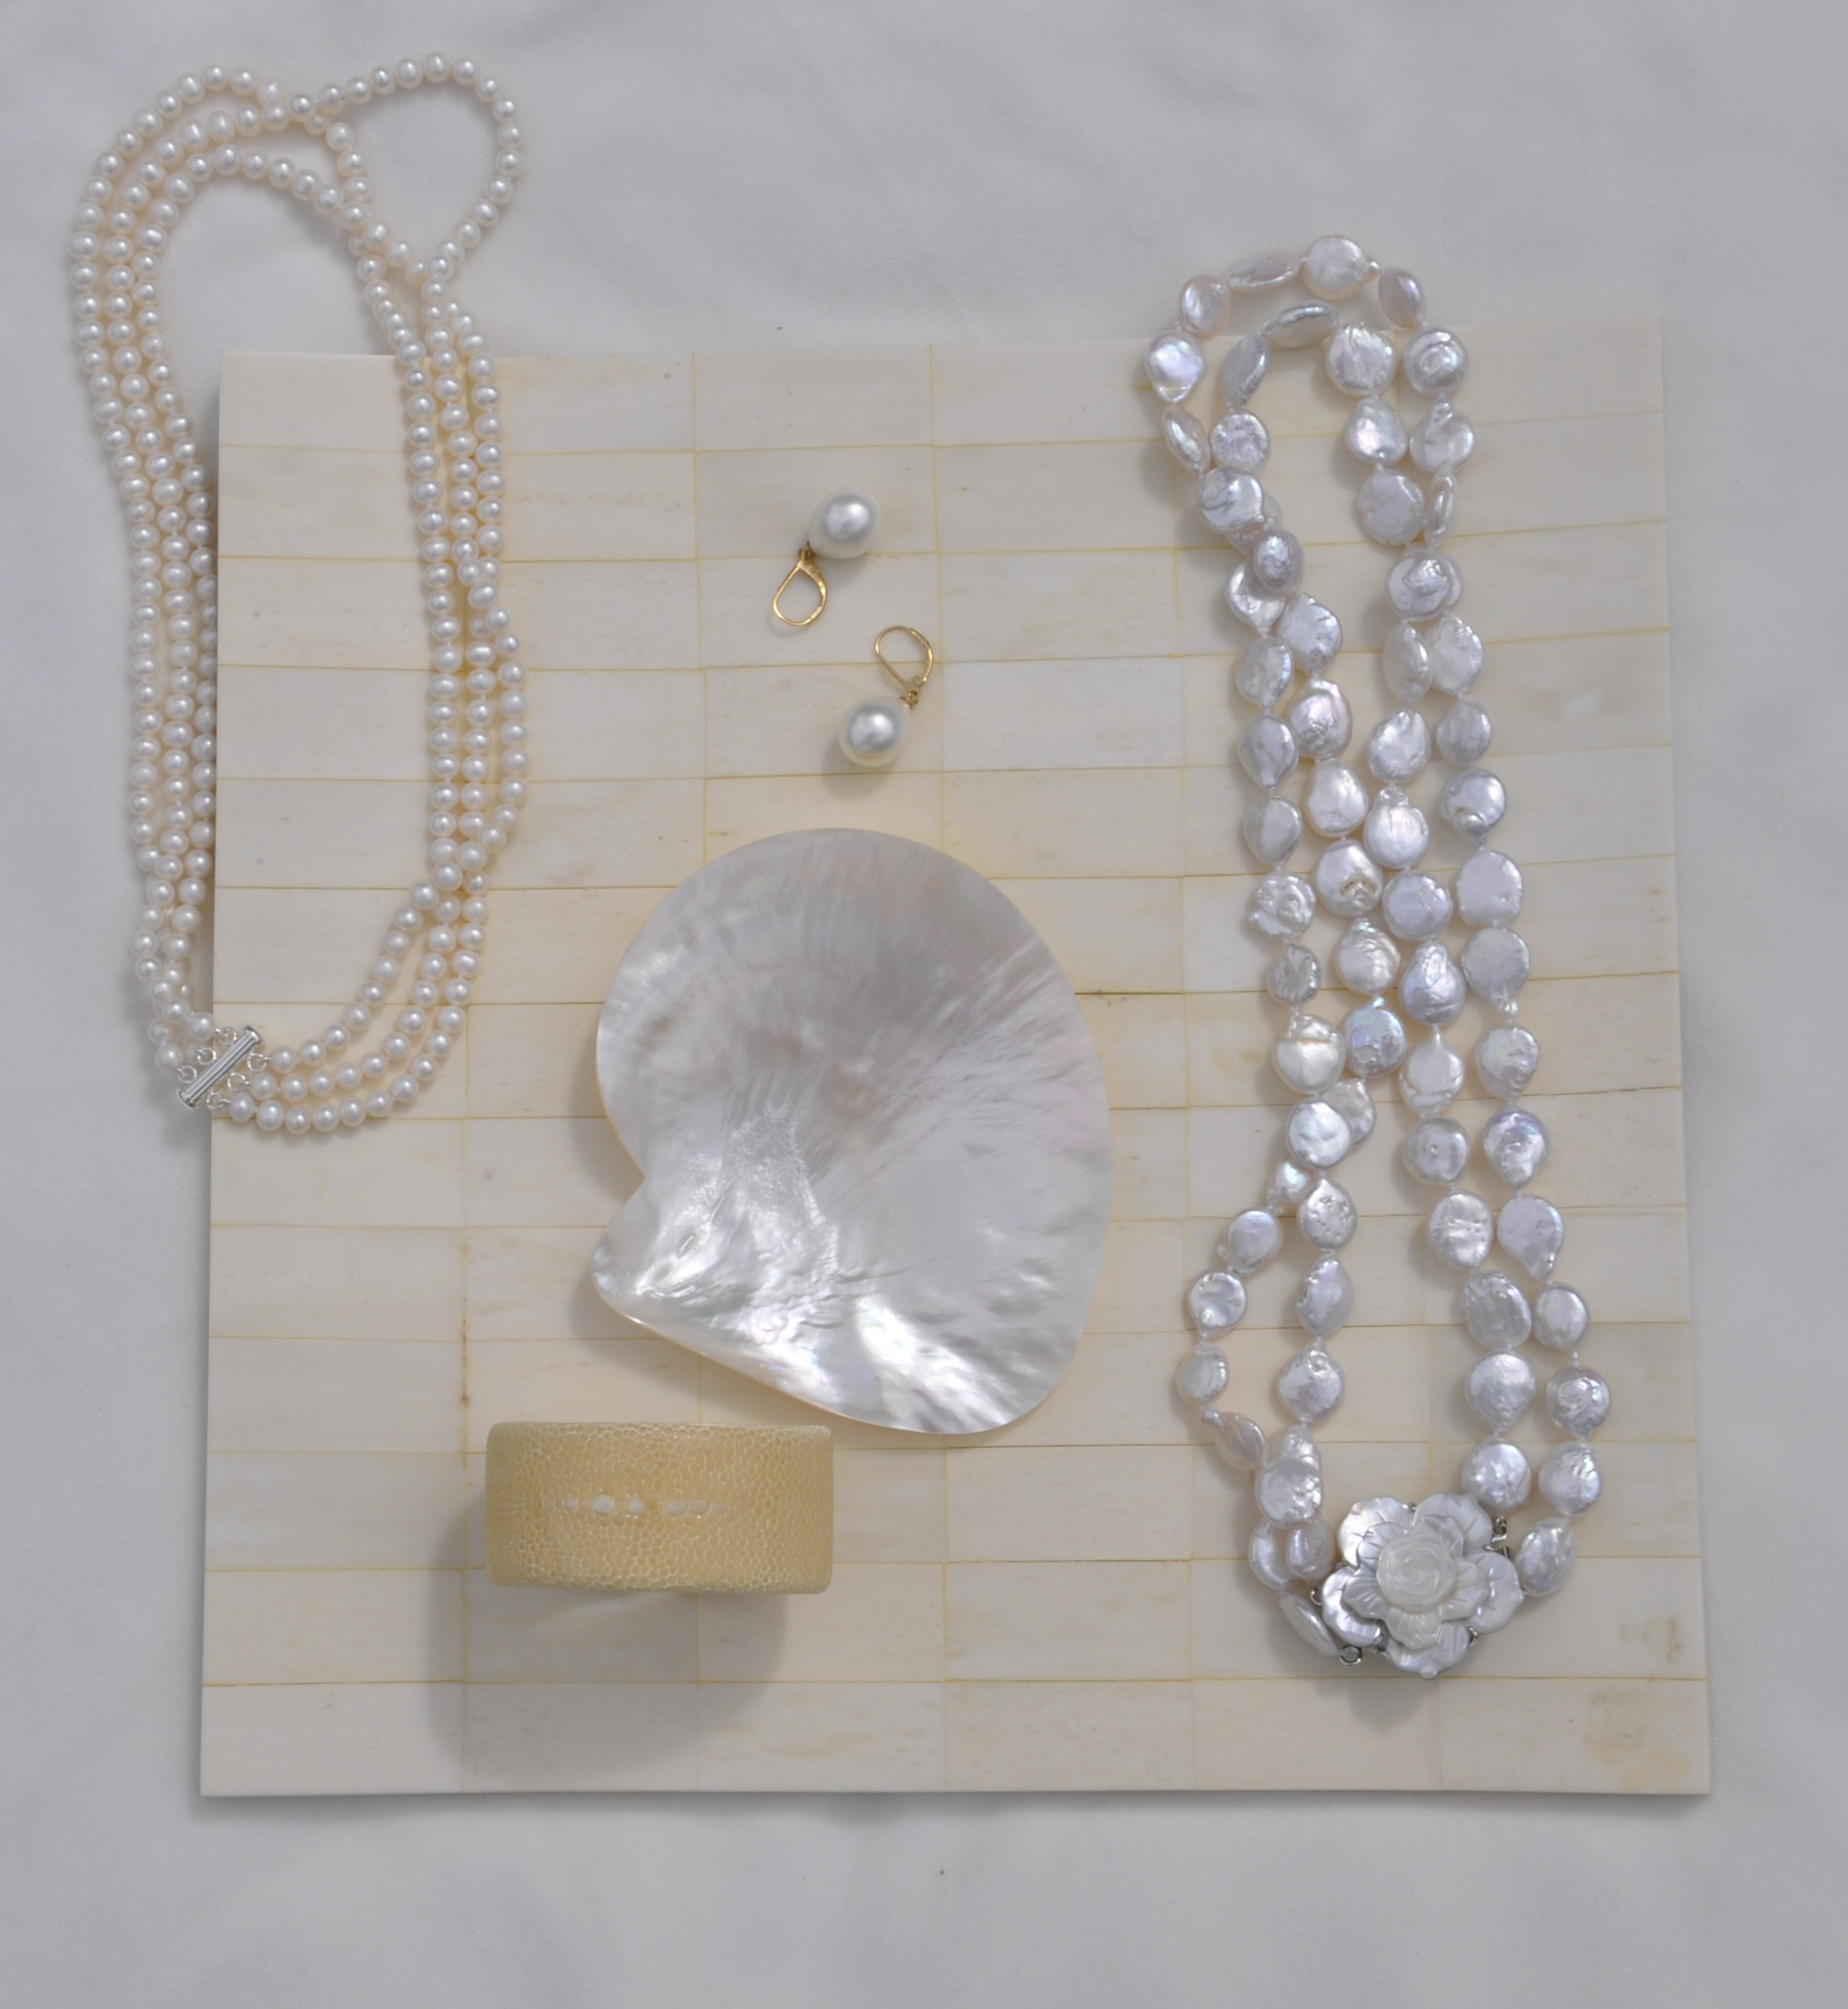 TOP LEFT: 3 strands round white freshwater pearls; CENTER: pearl drop earrings; RIGHT: 2 strand potato freshwater pearls w/ shell clasp; BOTTOM: cream shagreen petit cuff bracelet